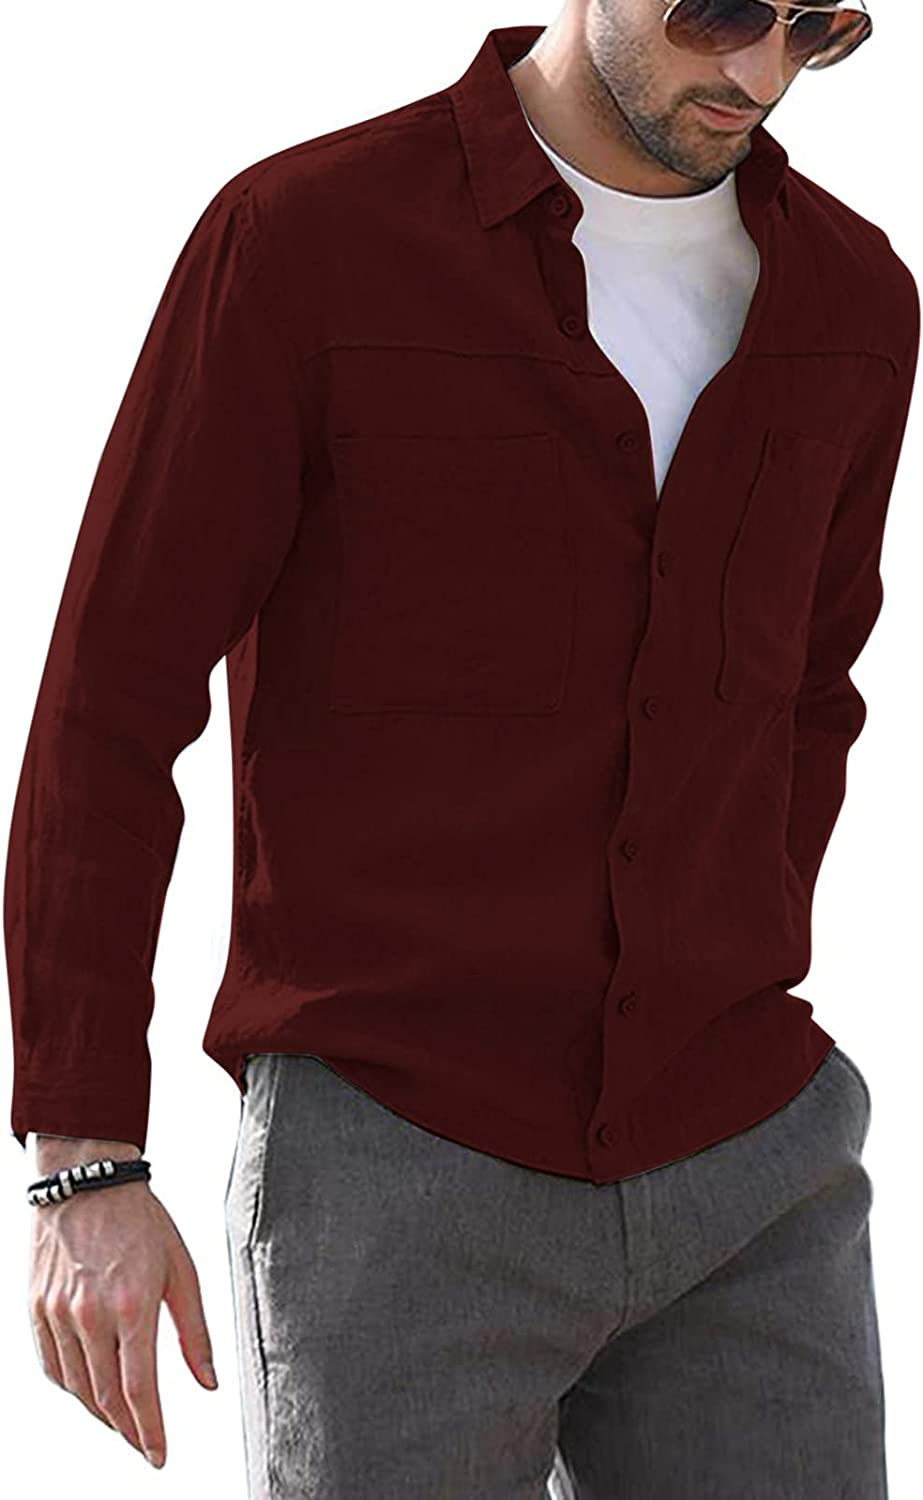 WOCACHI Long Sleeve Shirts for Mens, Button Down Lapel Solid Slim Fit Business Shirt Fashion Casual Beach Tops